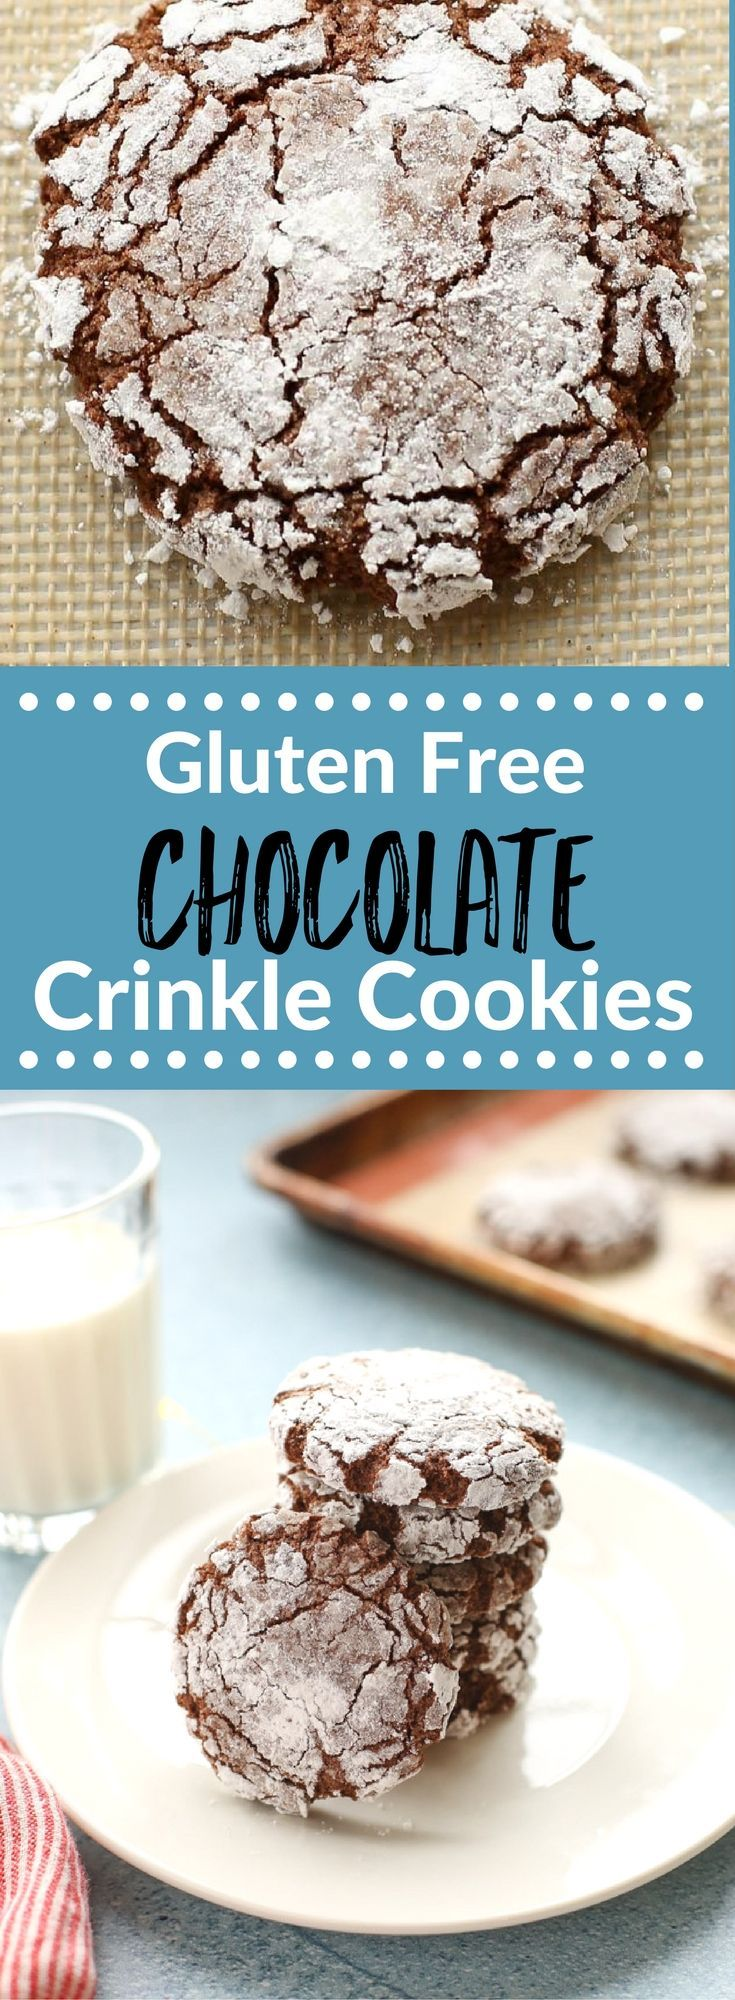 These Gluten Free Chocolate Crinkle Cookies are perfect for holiday gift giving and cookie exchanges. They are made with almond flour and have a fudgy, not too sweet flavor that everyone will love. {gluten free} via @lkkelly98